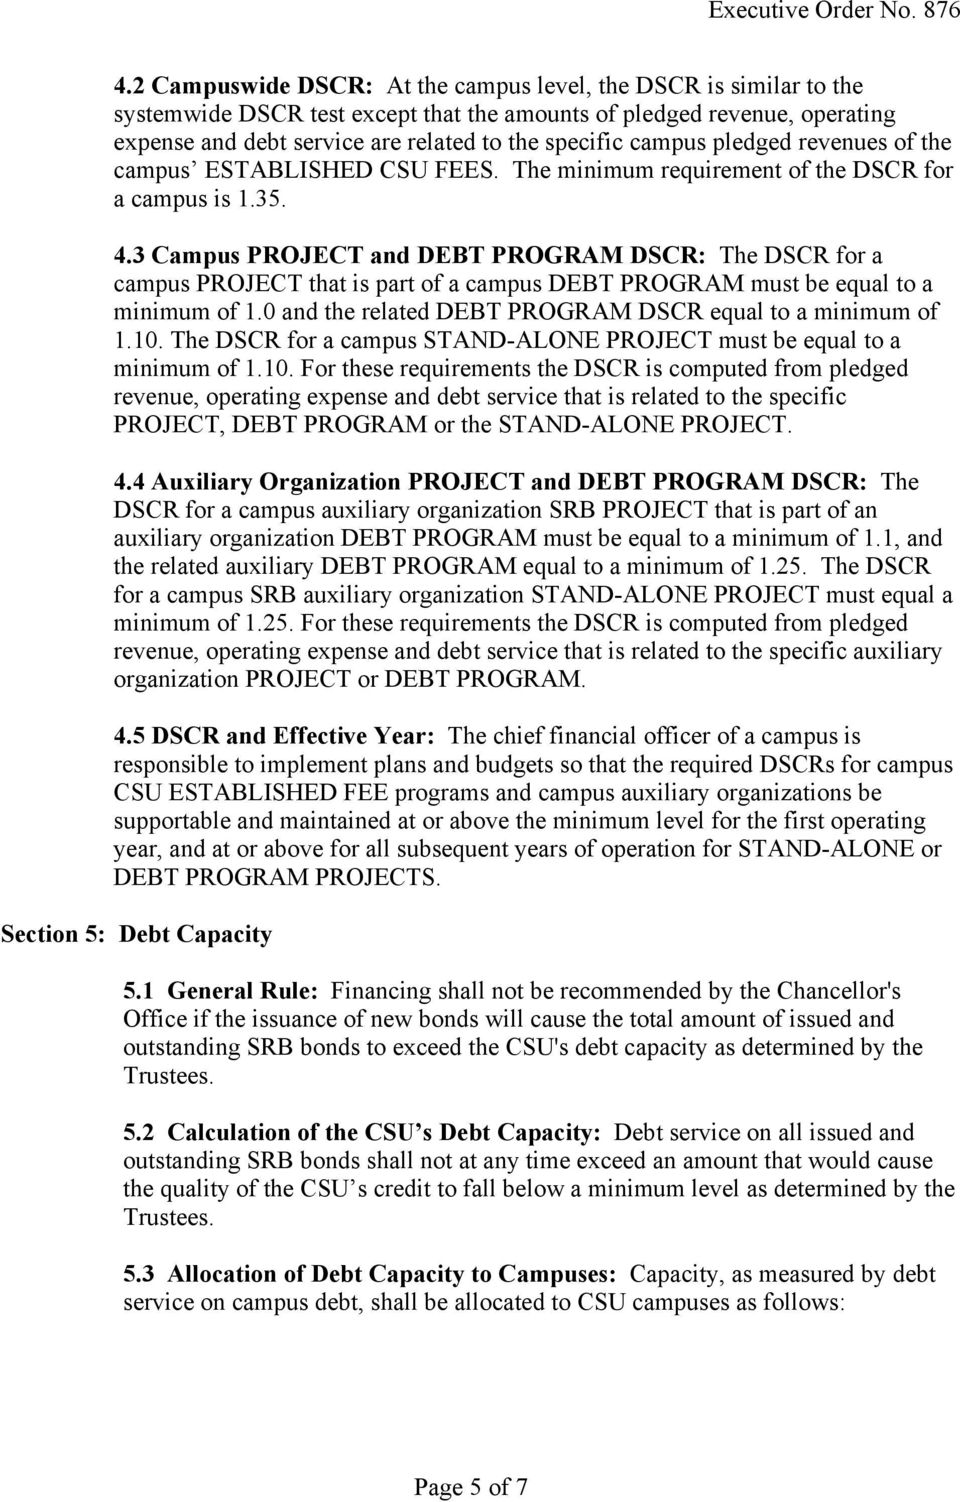 3 Campus PROJECT and DEBT PROGRAM DSCR: The DSCR for a campus PROJECT that is part of a campus DEBT PROGRAM must be equal to a minimum of 1.0 and the related DEBT PROGRAM DSCR equal to a minimum of 1.